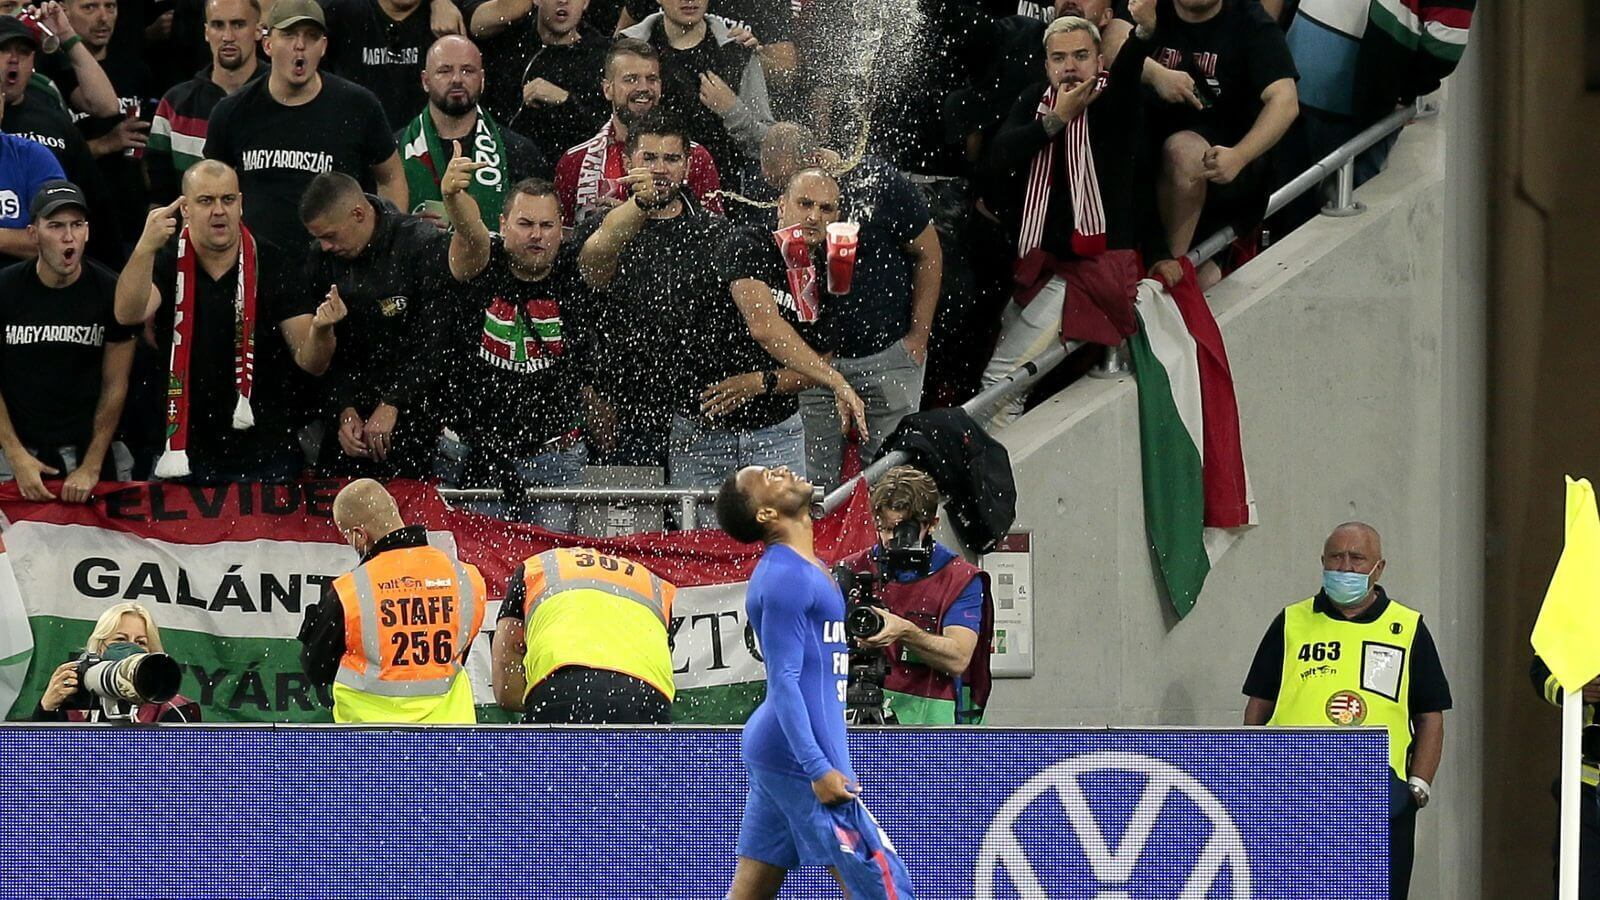 FIFA ordered Hungary to play two games without fans